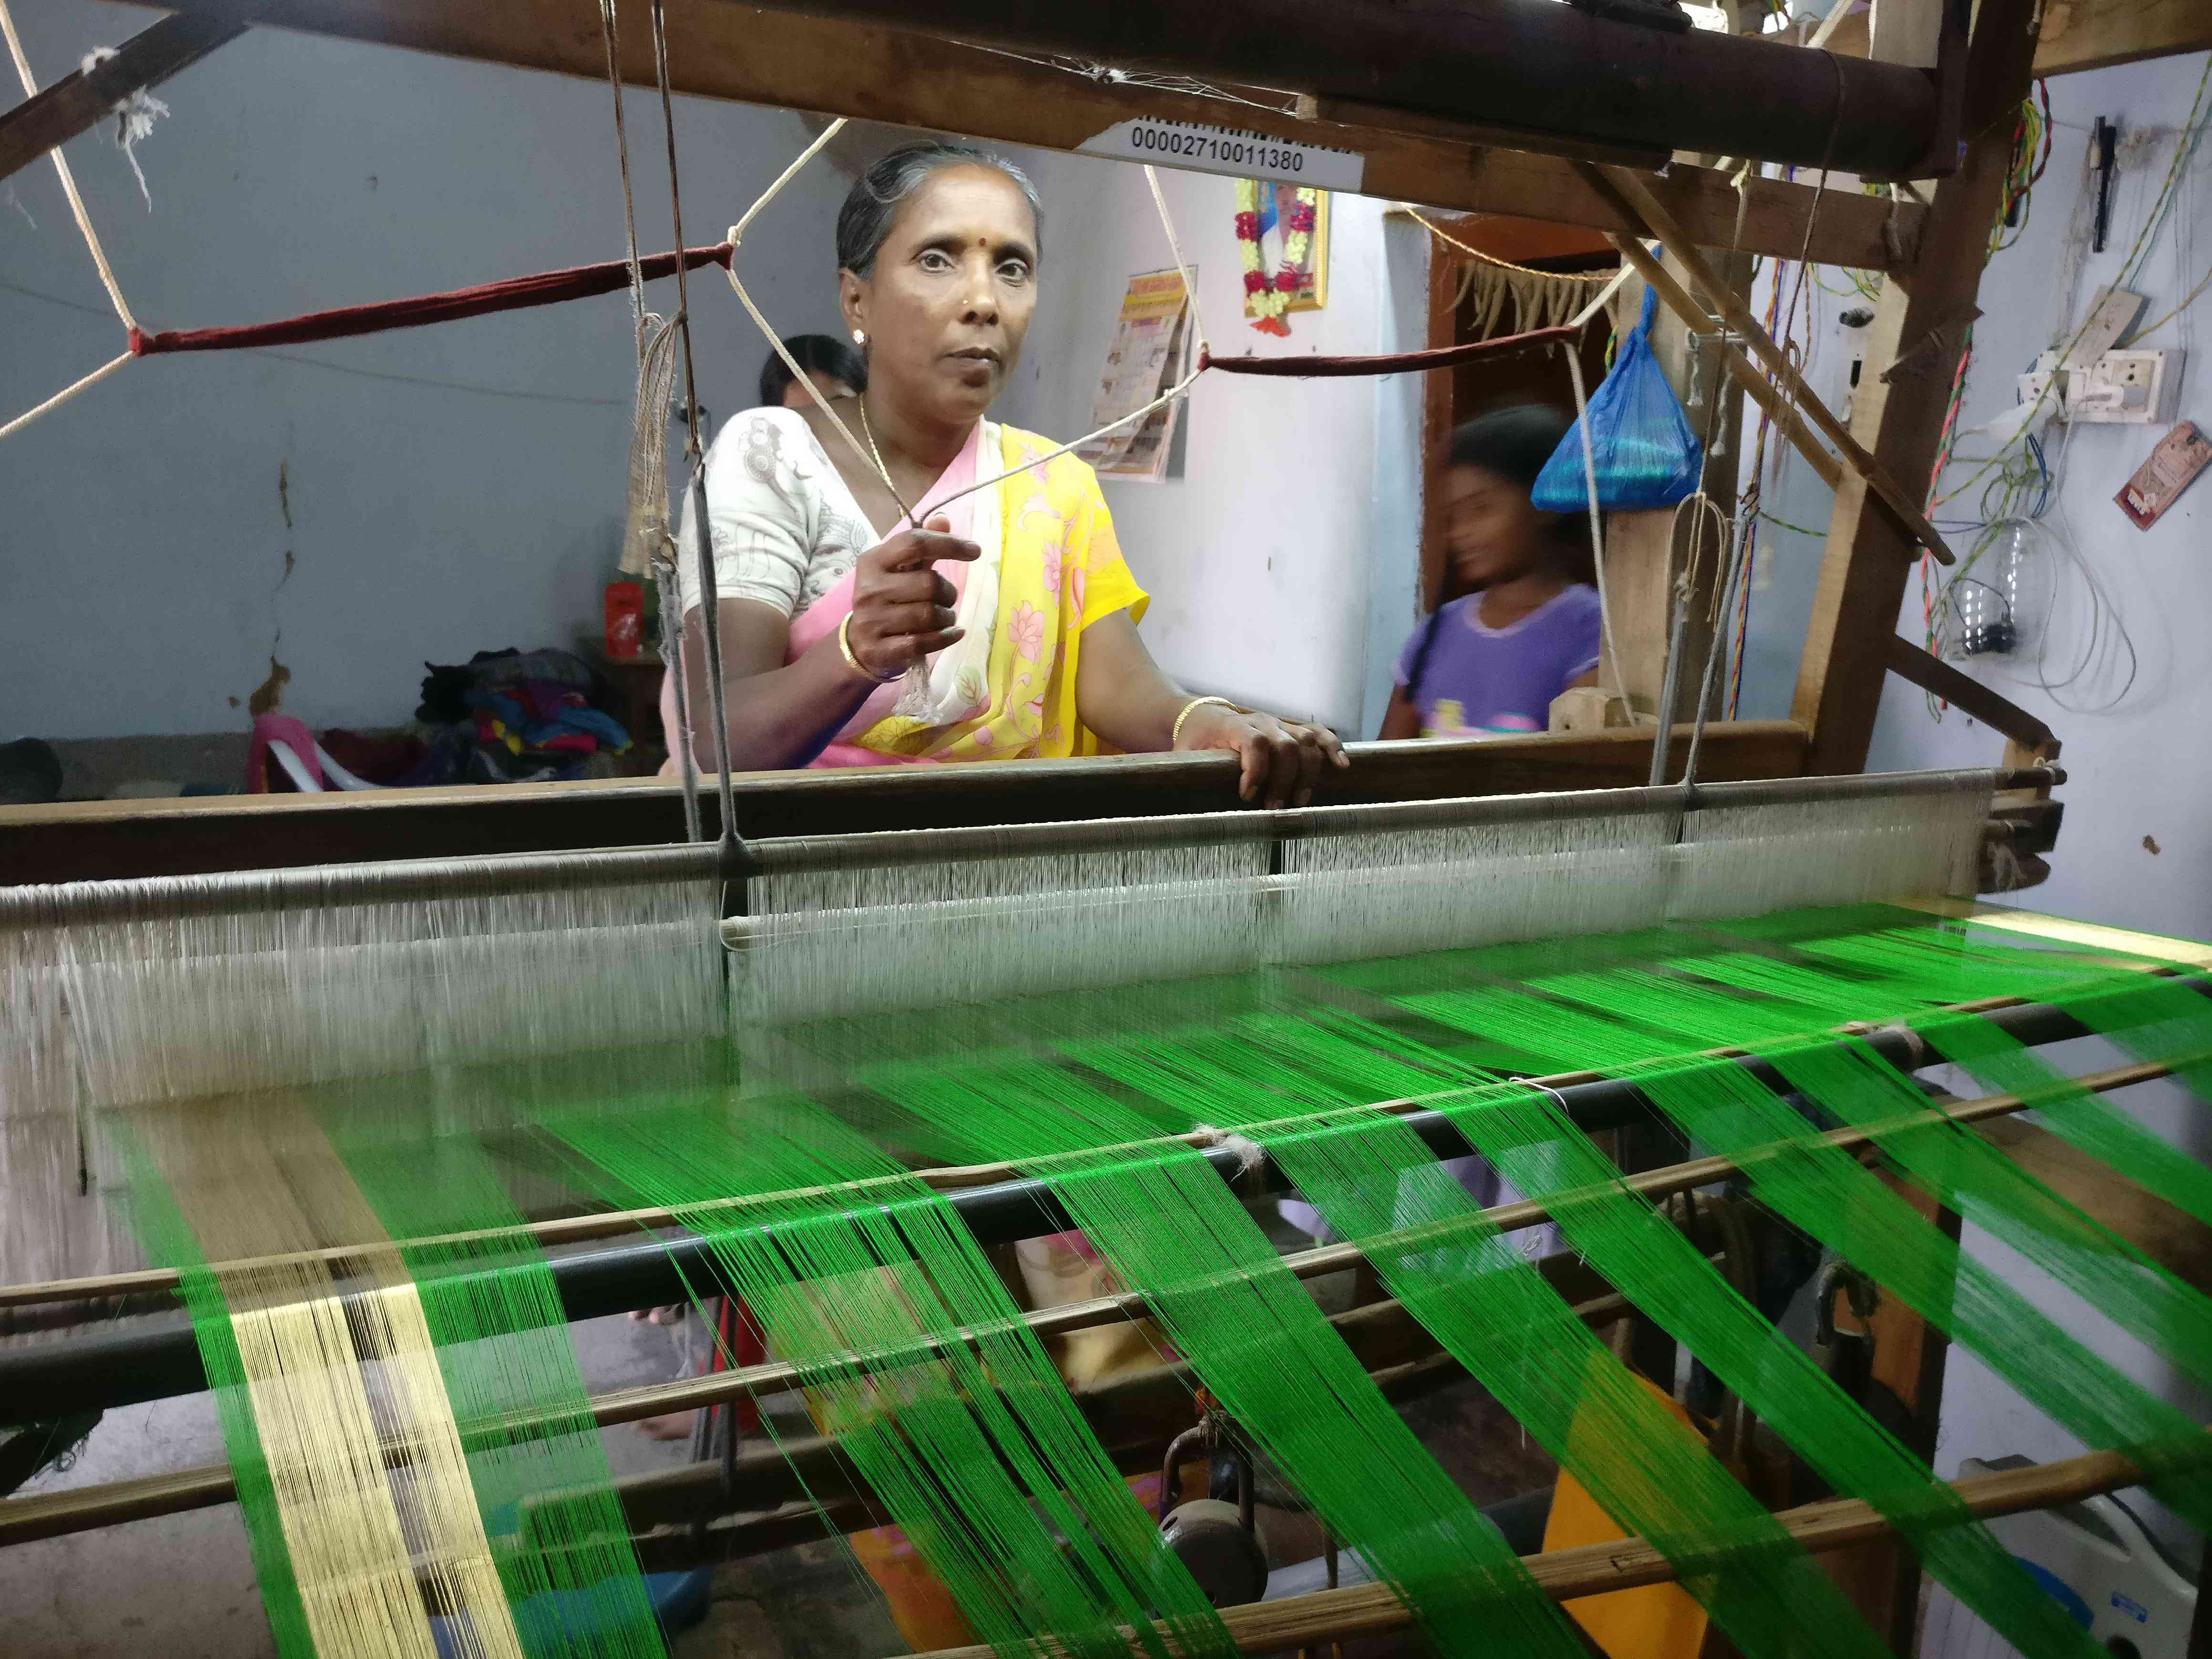 Parathi Vallabhdas, mother of Nagaroja Vallabhdas, working at the handloom in their home. (Photo credit: Nayantara Narayanan).